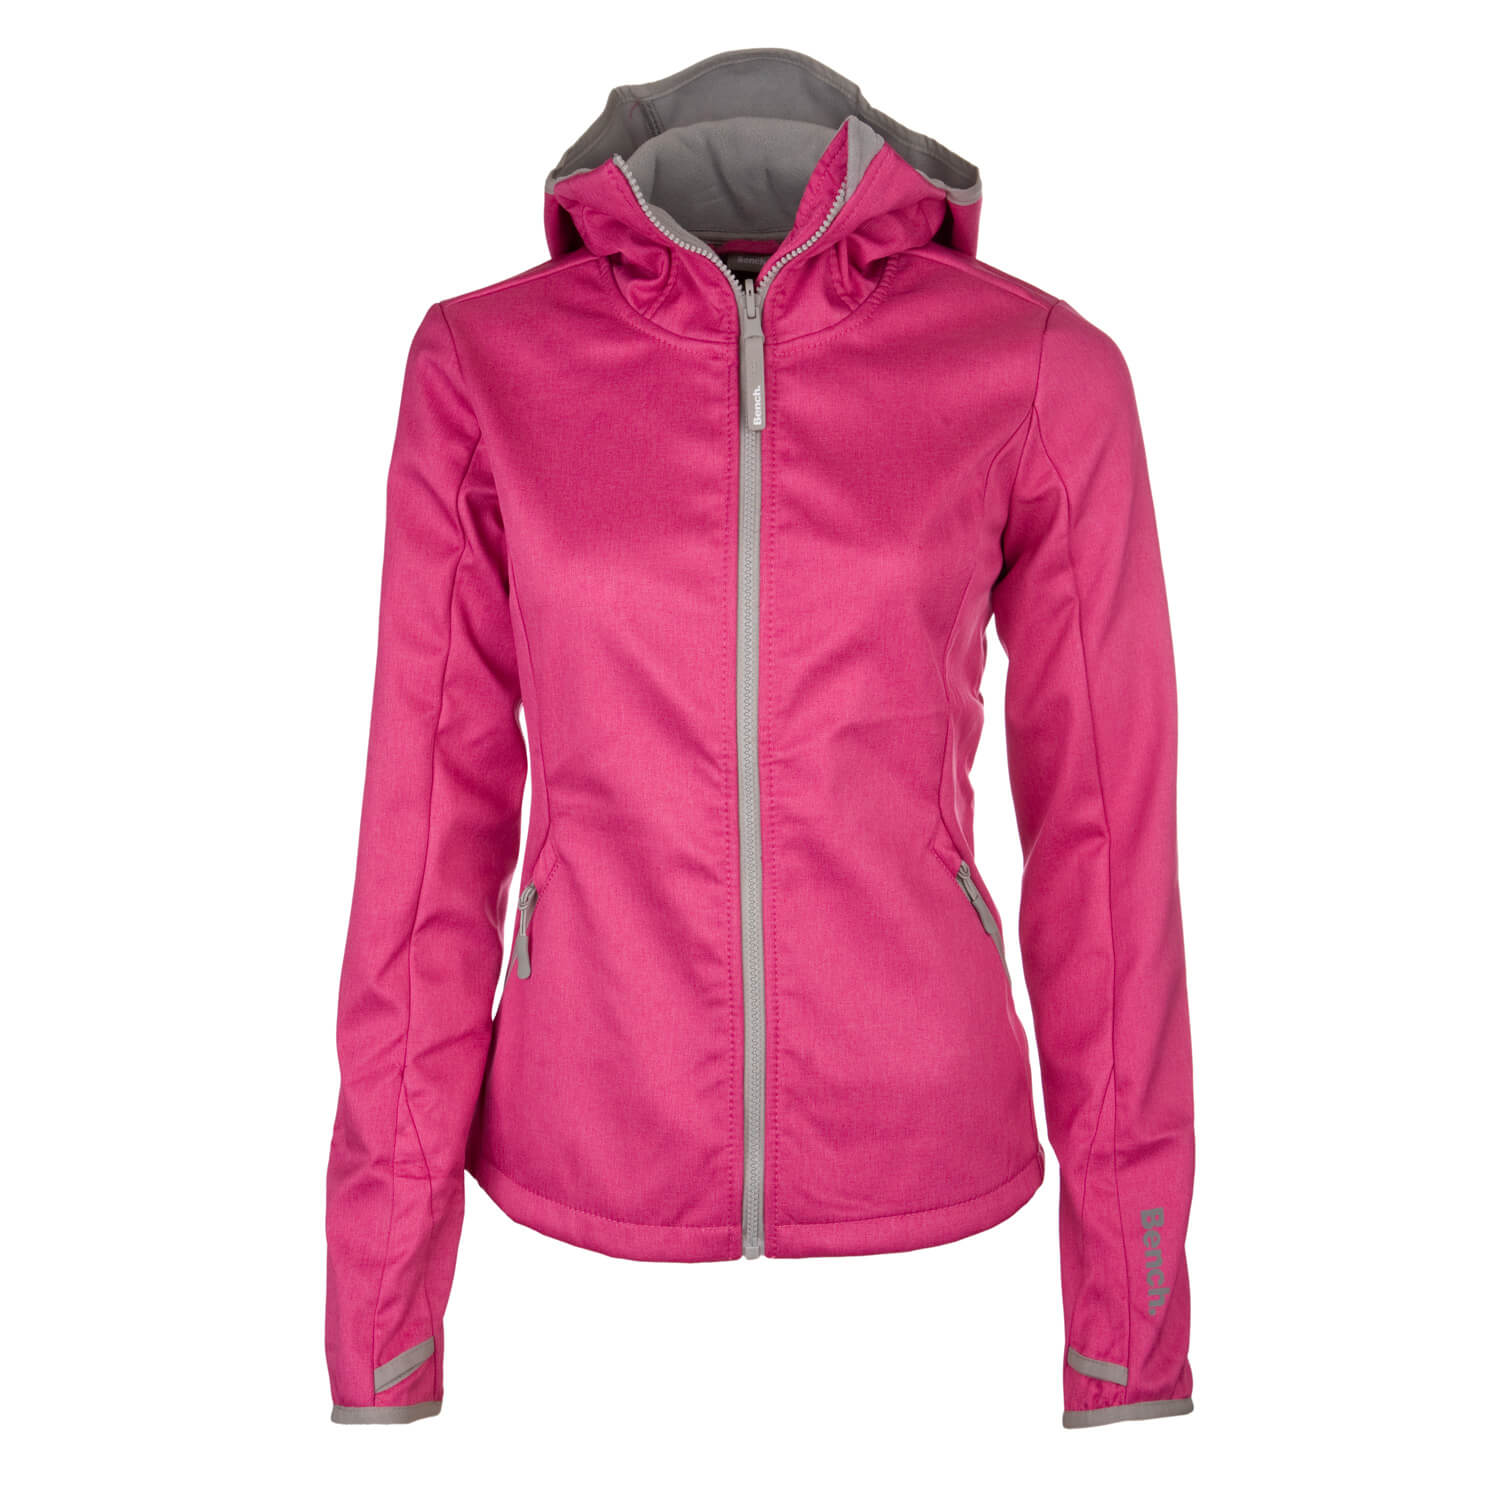 Bench jacken damen fleece